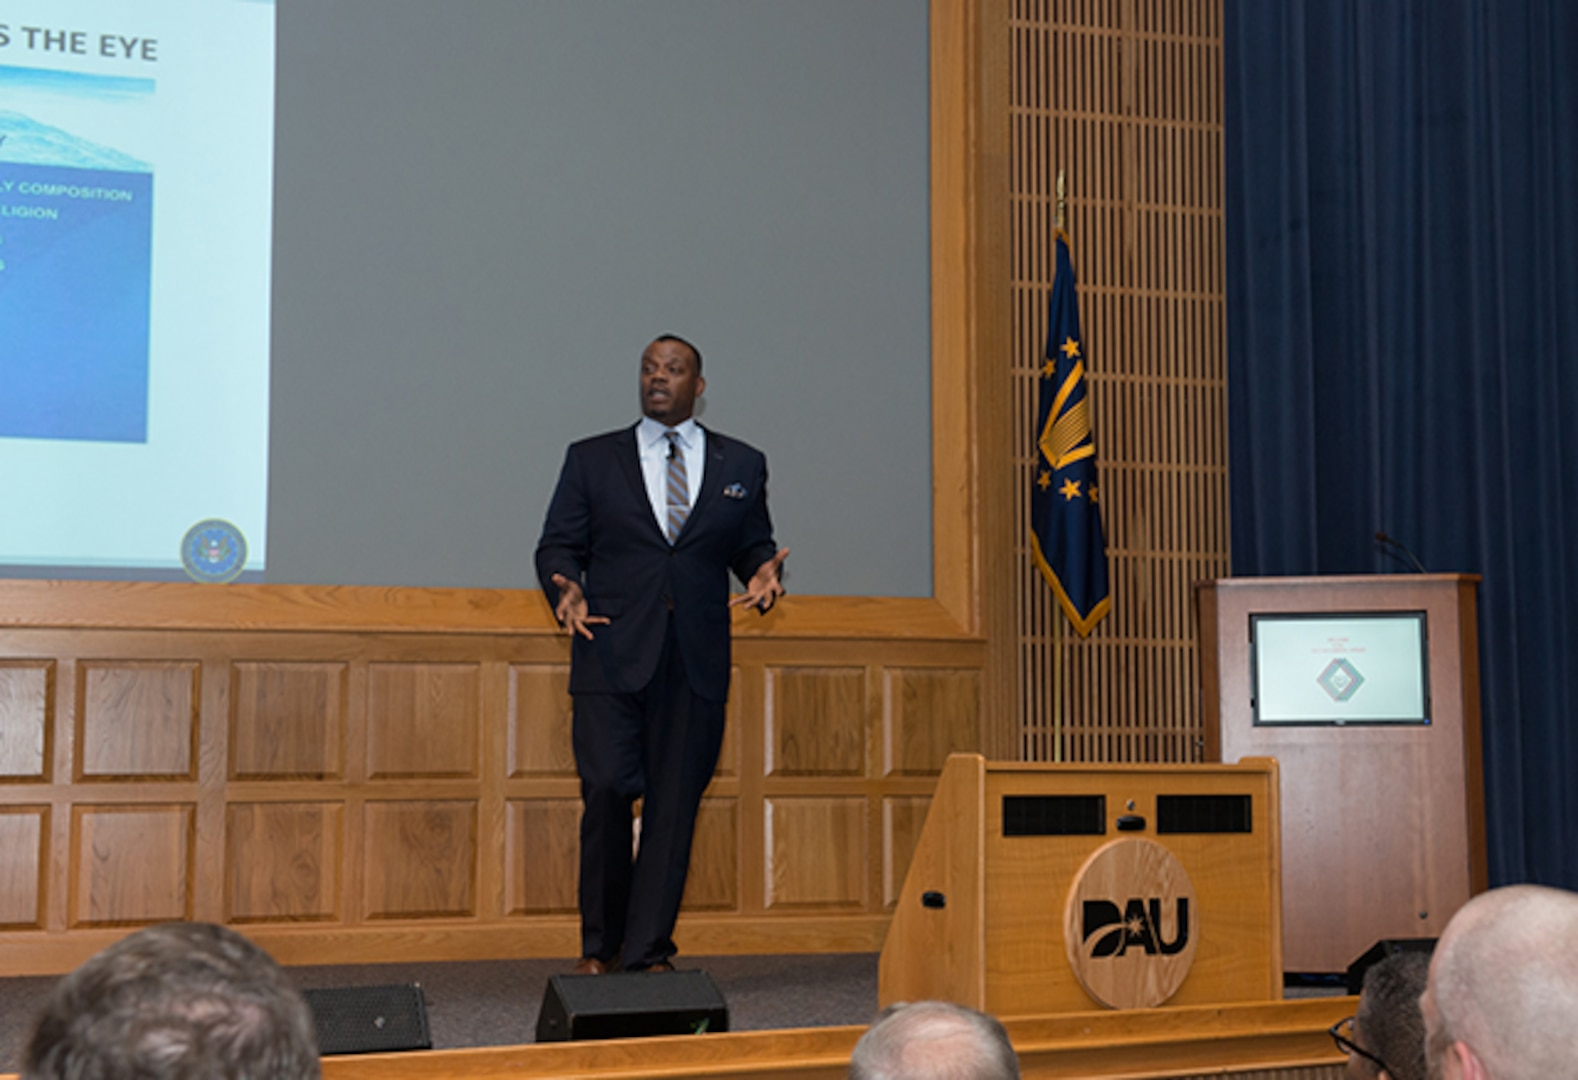 George P. Braxton, DCMA's special advisor for diversity and inclusion, gave a presentation to DAU faculty and staff.